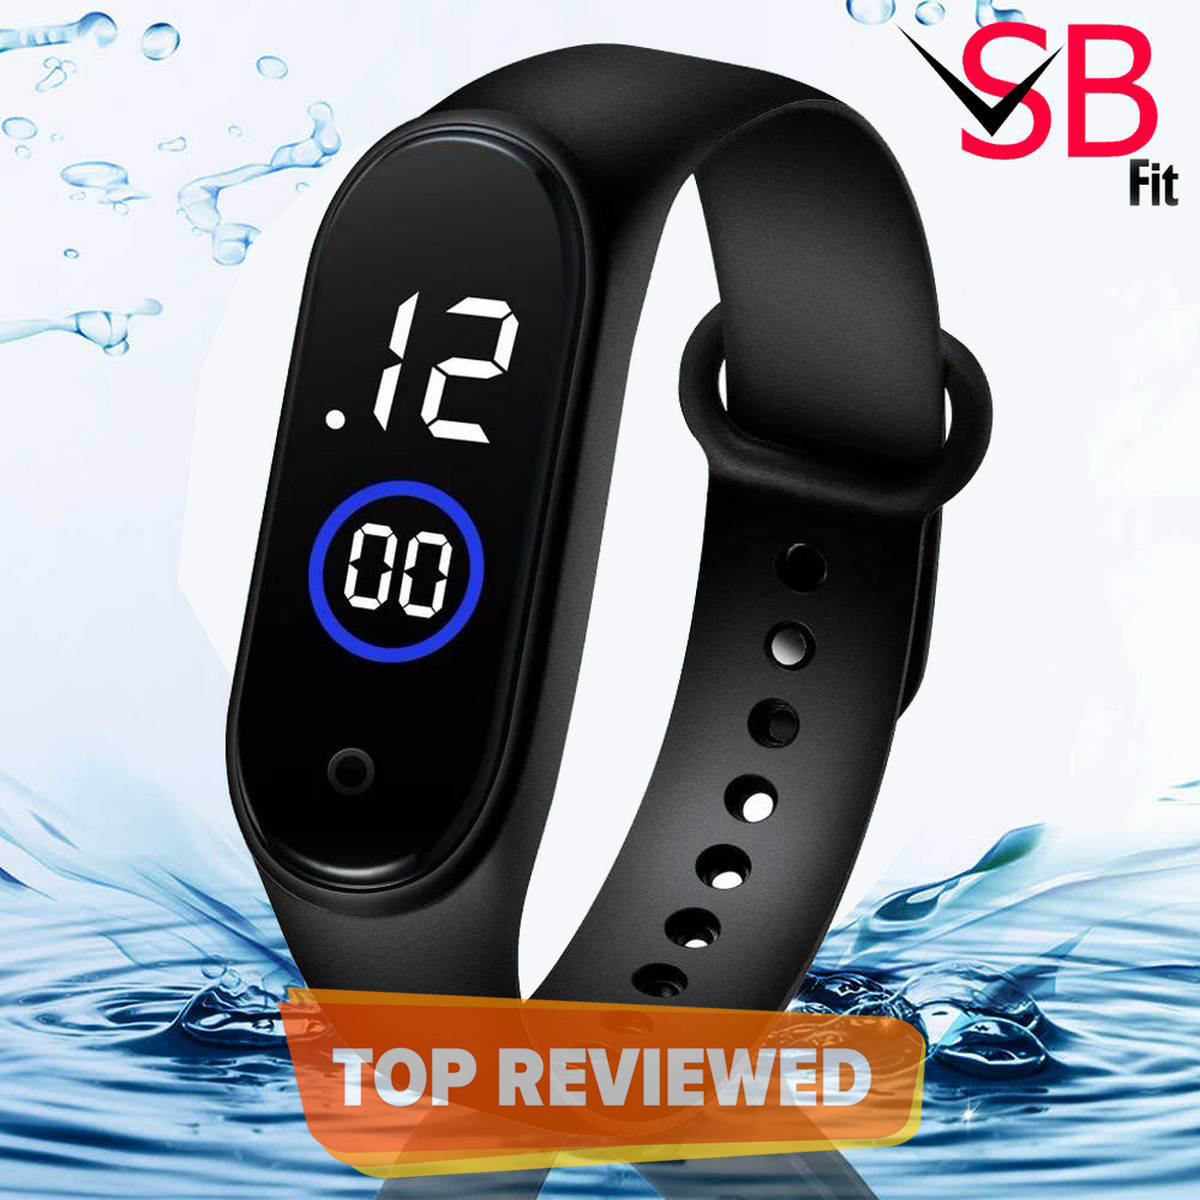 Waterproof Sport M4 Touch Led Digital Watch For Boys & Girls SB FIT - All Colours